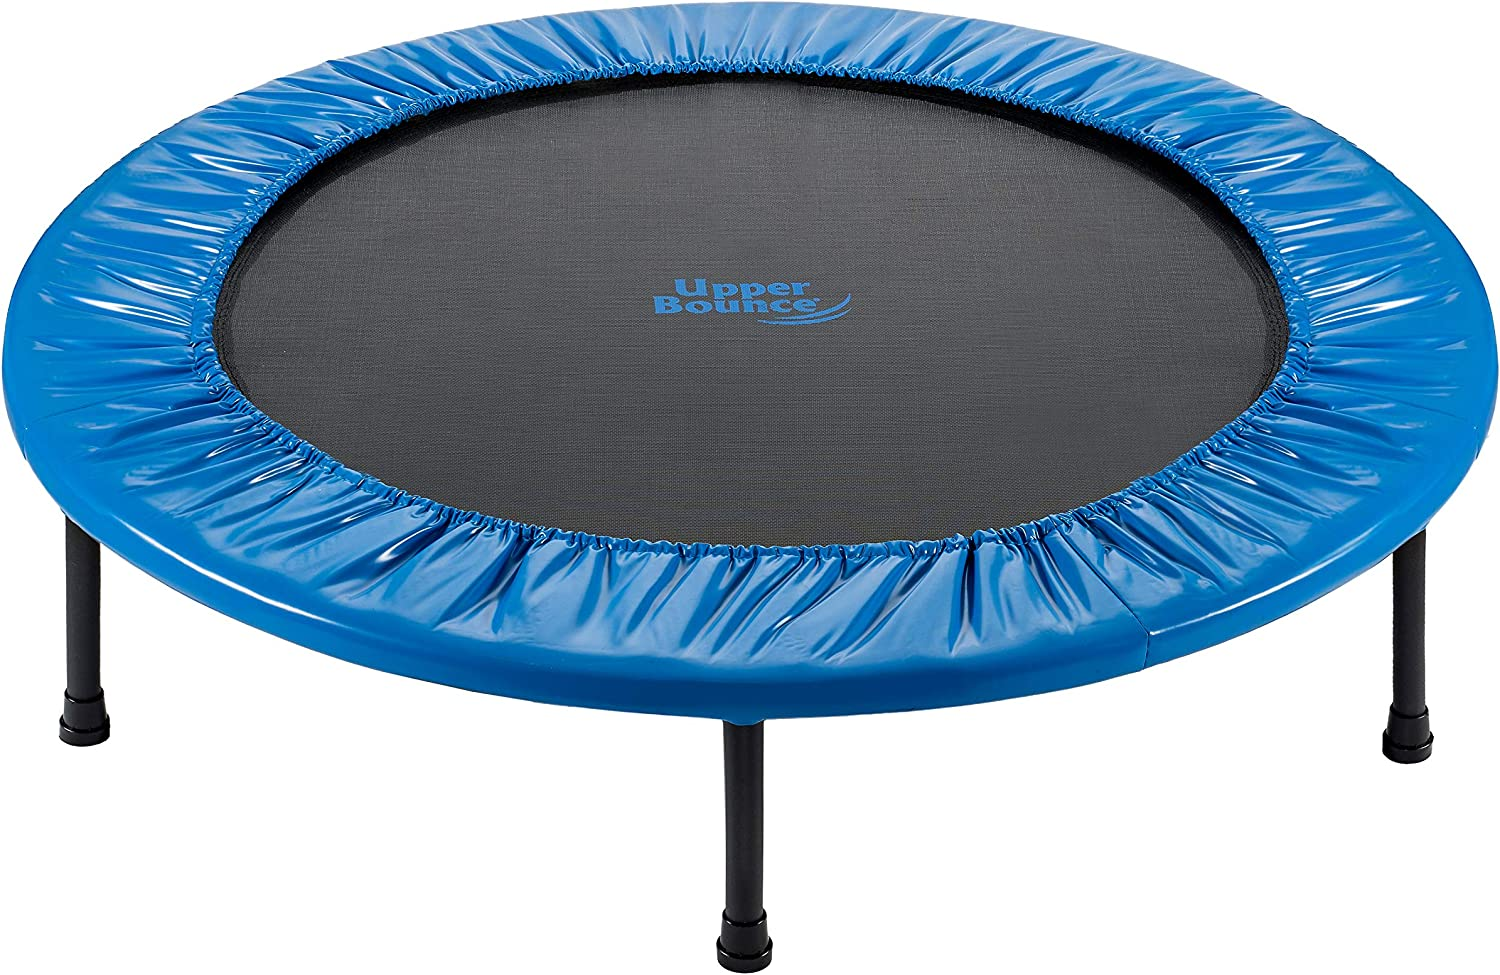 Upper Bounce 40 Mini Round Double-Fold Compact Rebounder Trampoline with Travel Carry Bag